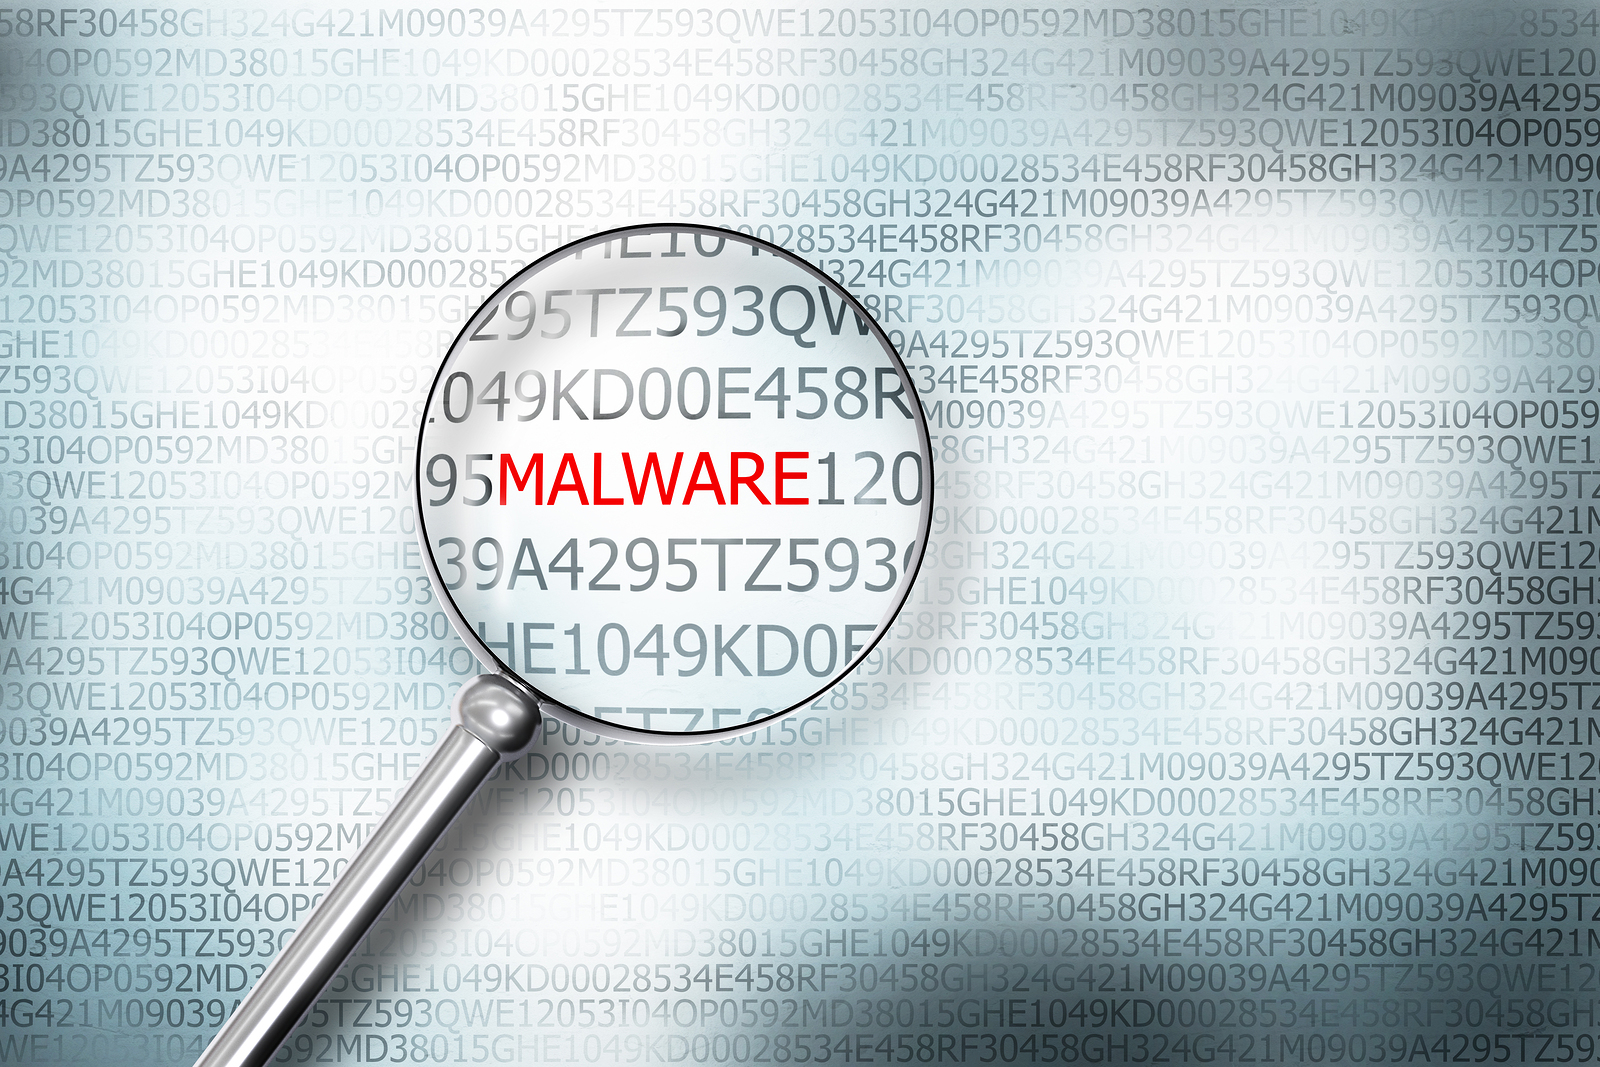 Malware developers find new ways to avoid detection